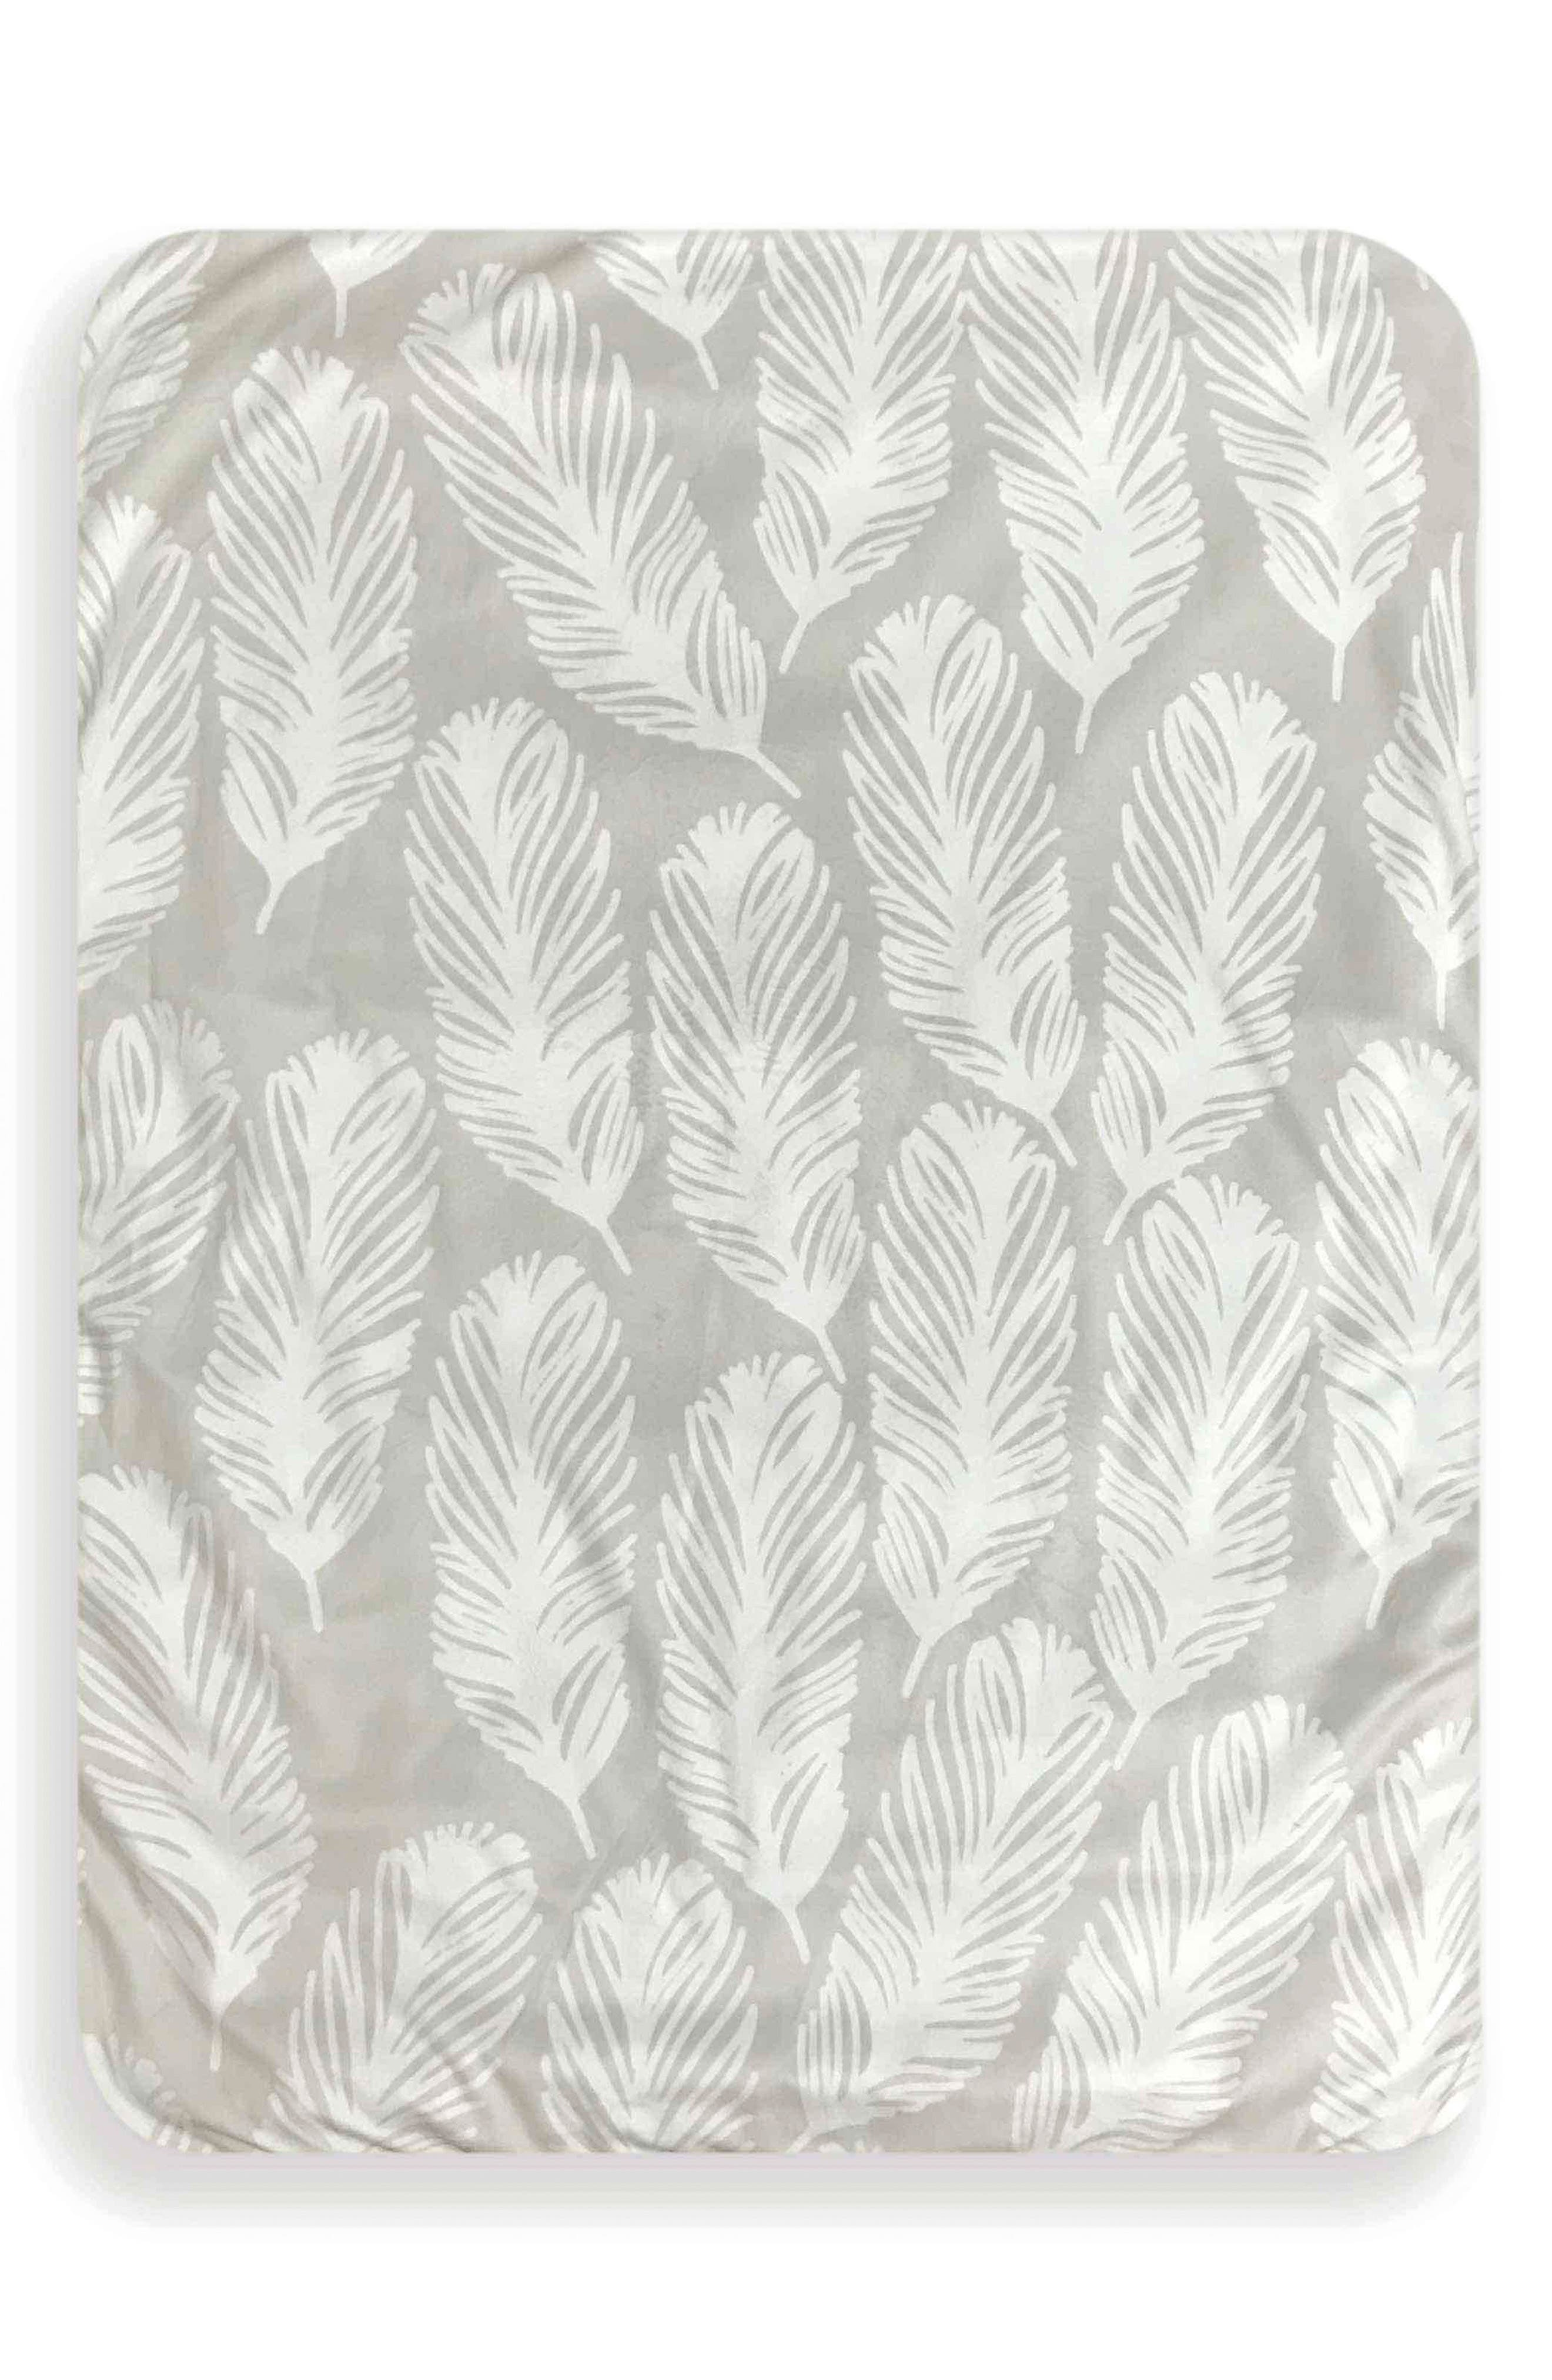 Feathers & Forest Play Mat,                         Main,                         color, TAUPE AND WHITE